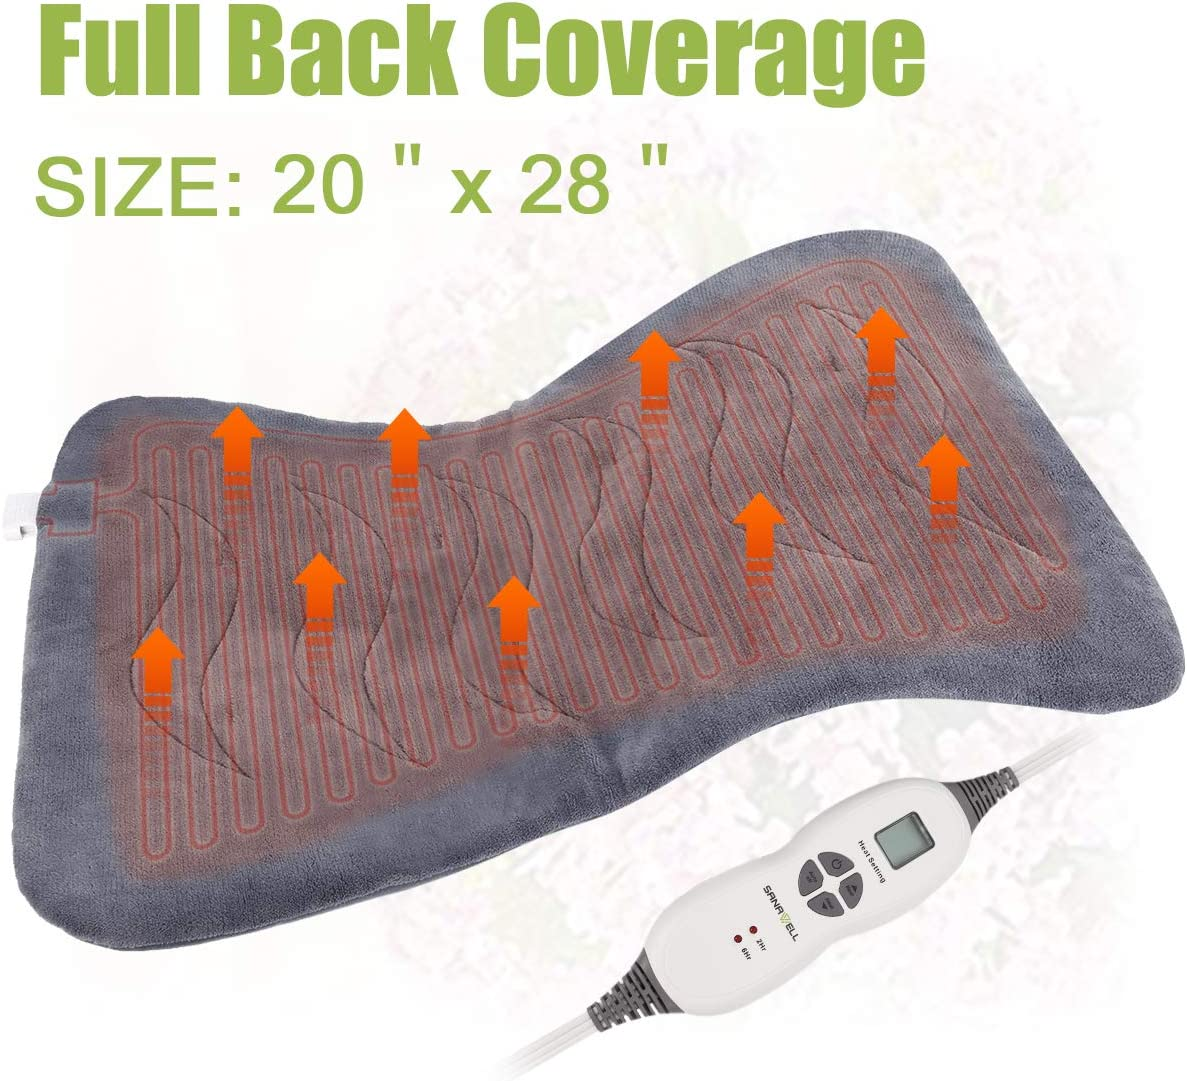 """XXL Back Heating Padfor Cramps Relief with X-Large Size 20"""" x 28"""" - Soft Electric Moist Heat Pad for Full Back with Fast-heating Technology Auto Shut-off, 6 Heat Settings, UL Listed"""